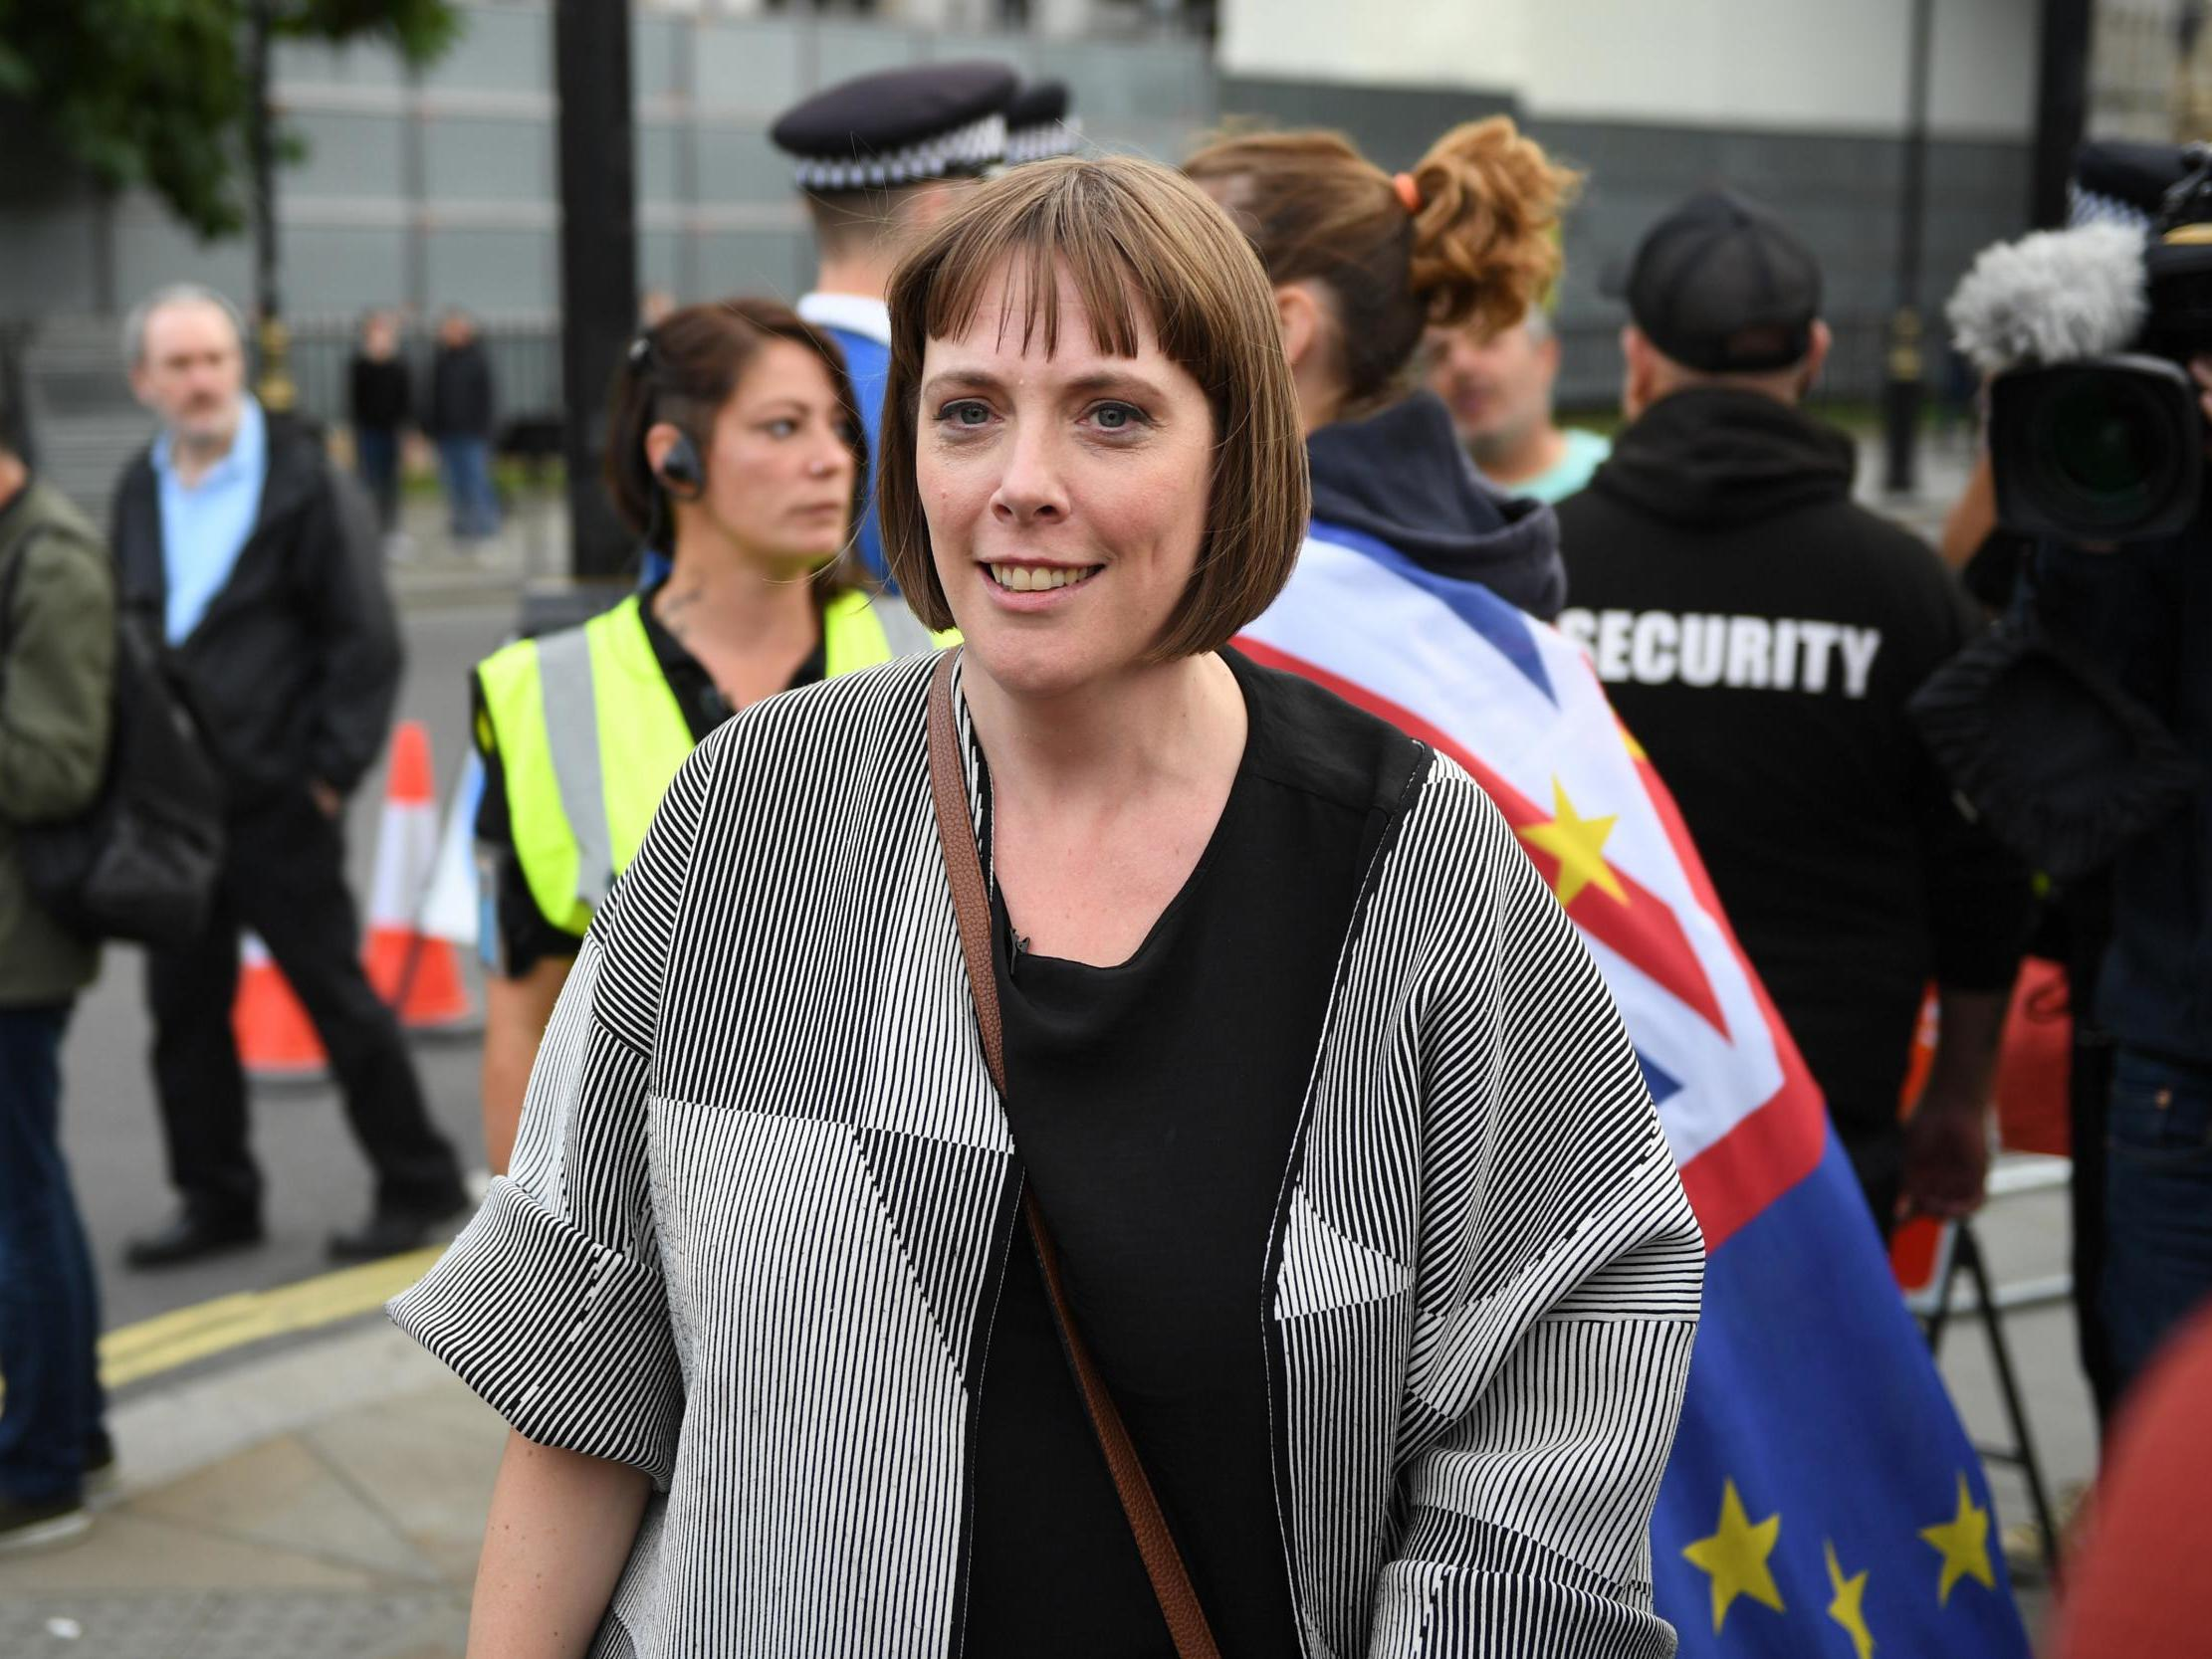 Labour MP Jess Phillips condemns new 'misleading' video shared by official Tory account